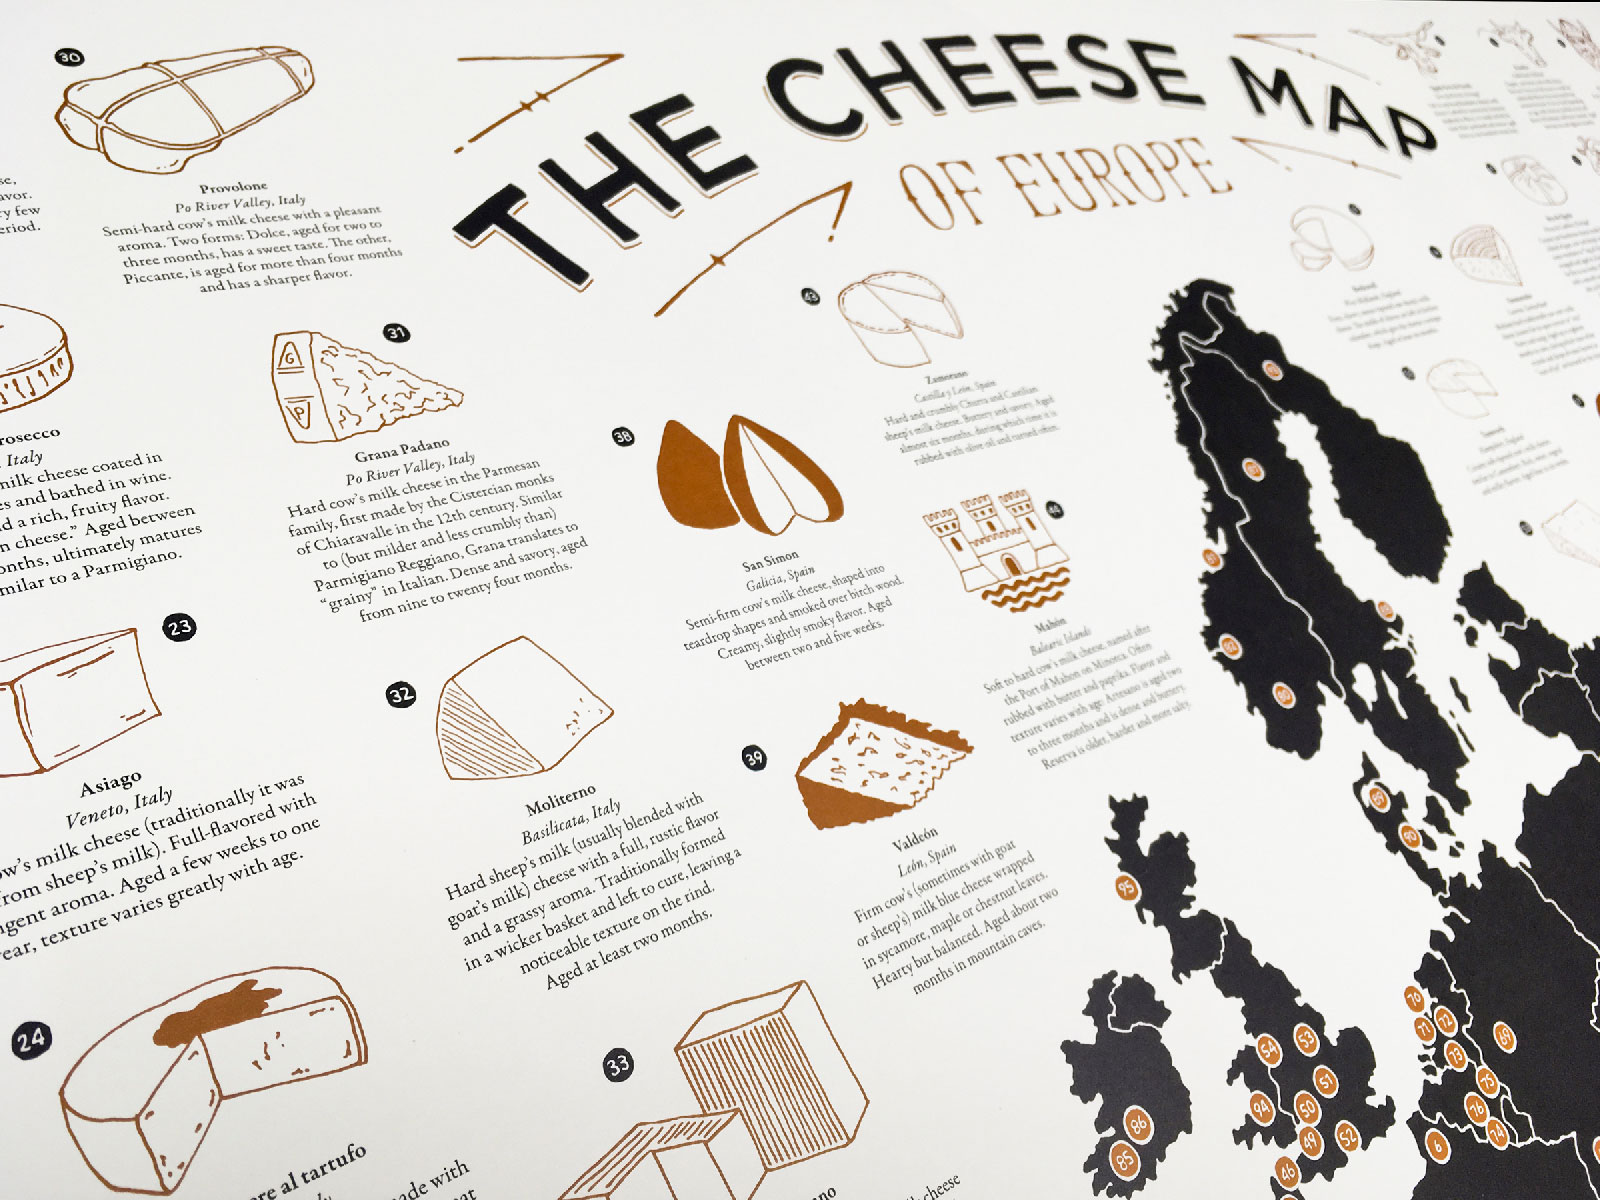 This Map Covers 100 Different European Cheeses on One Frameable Poster